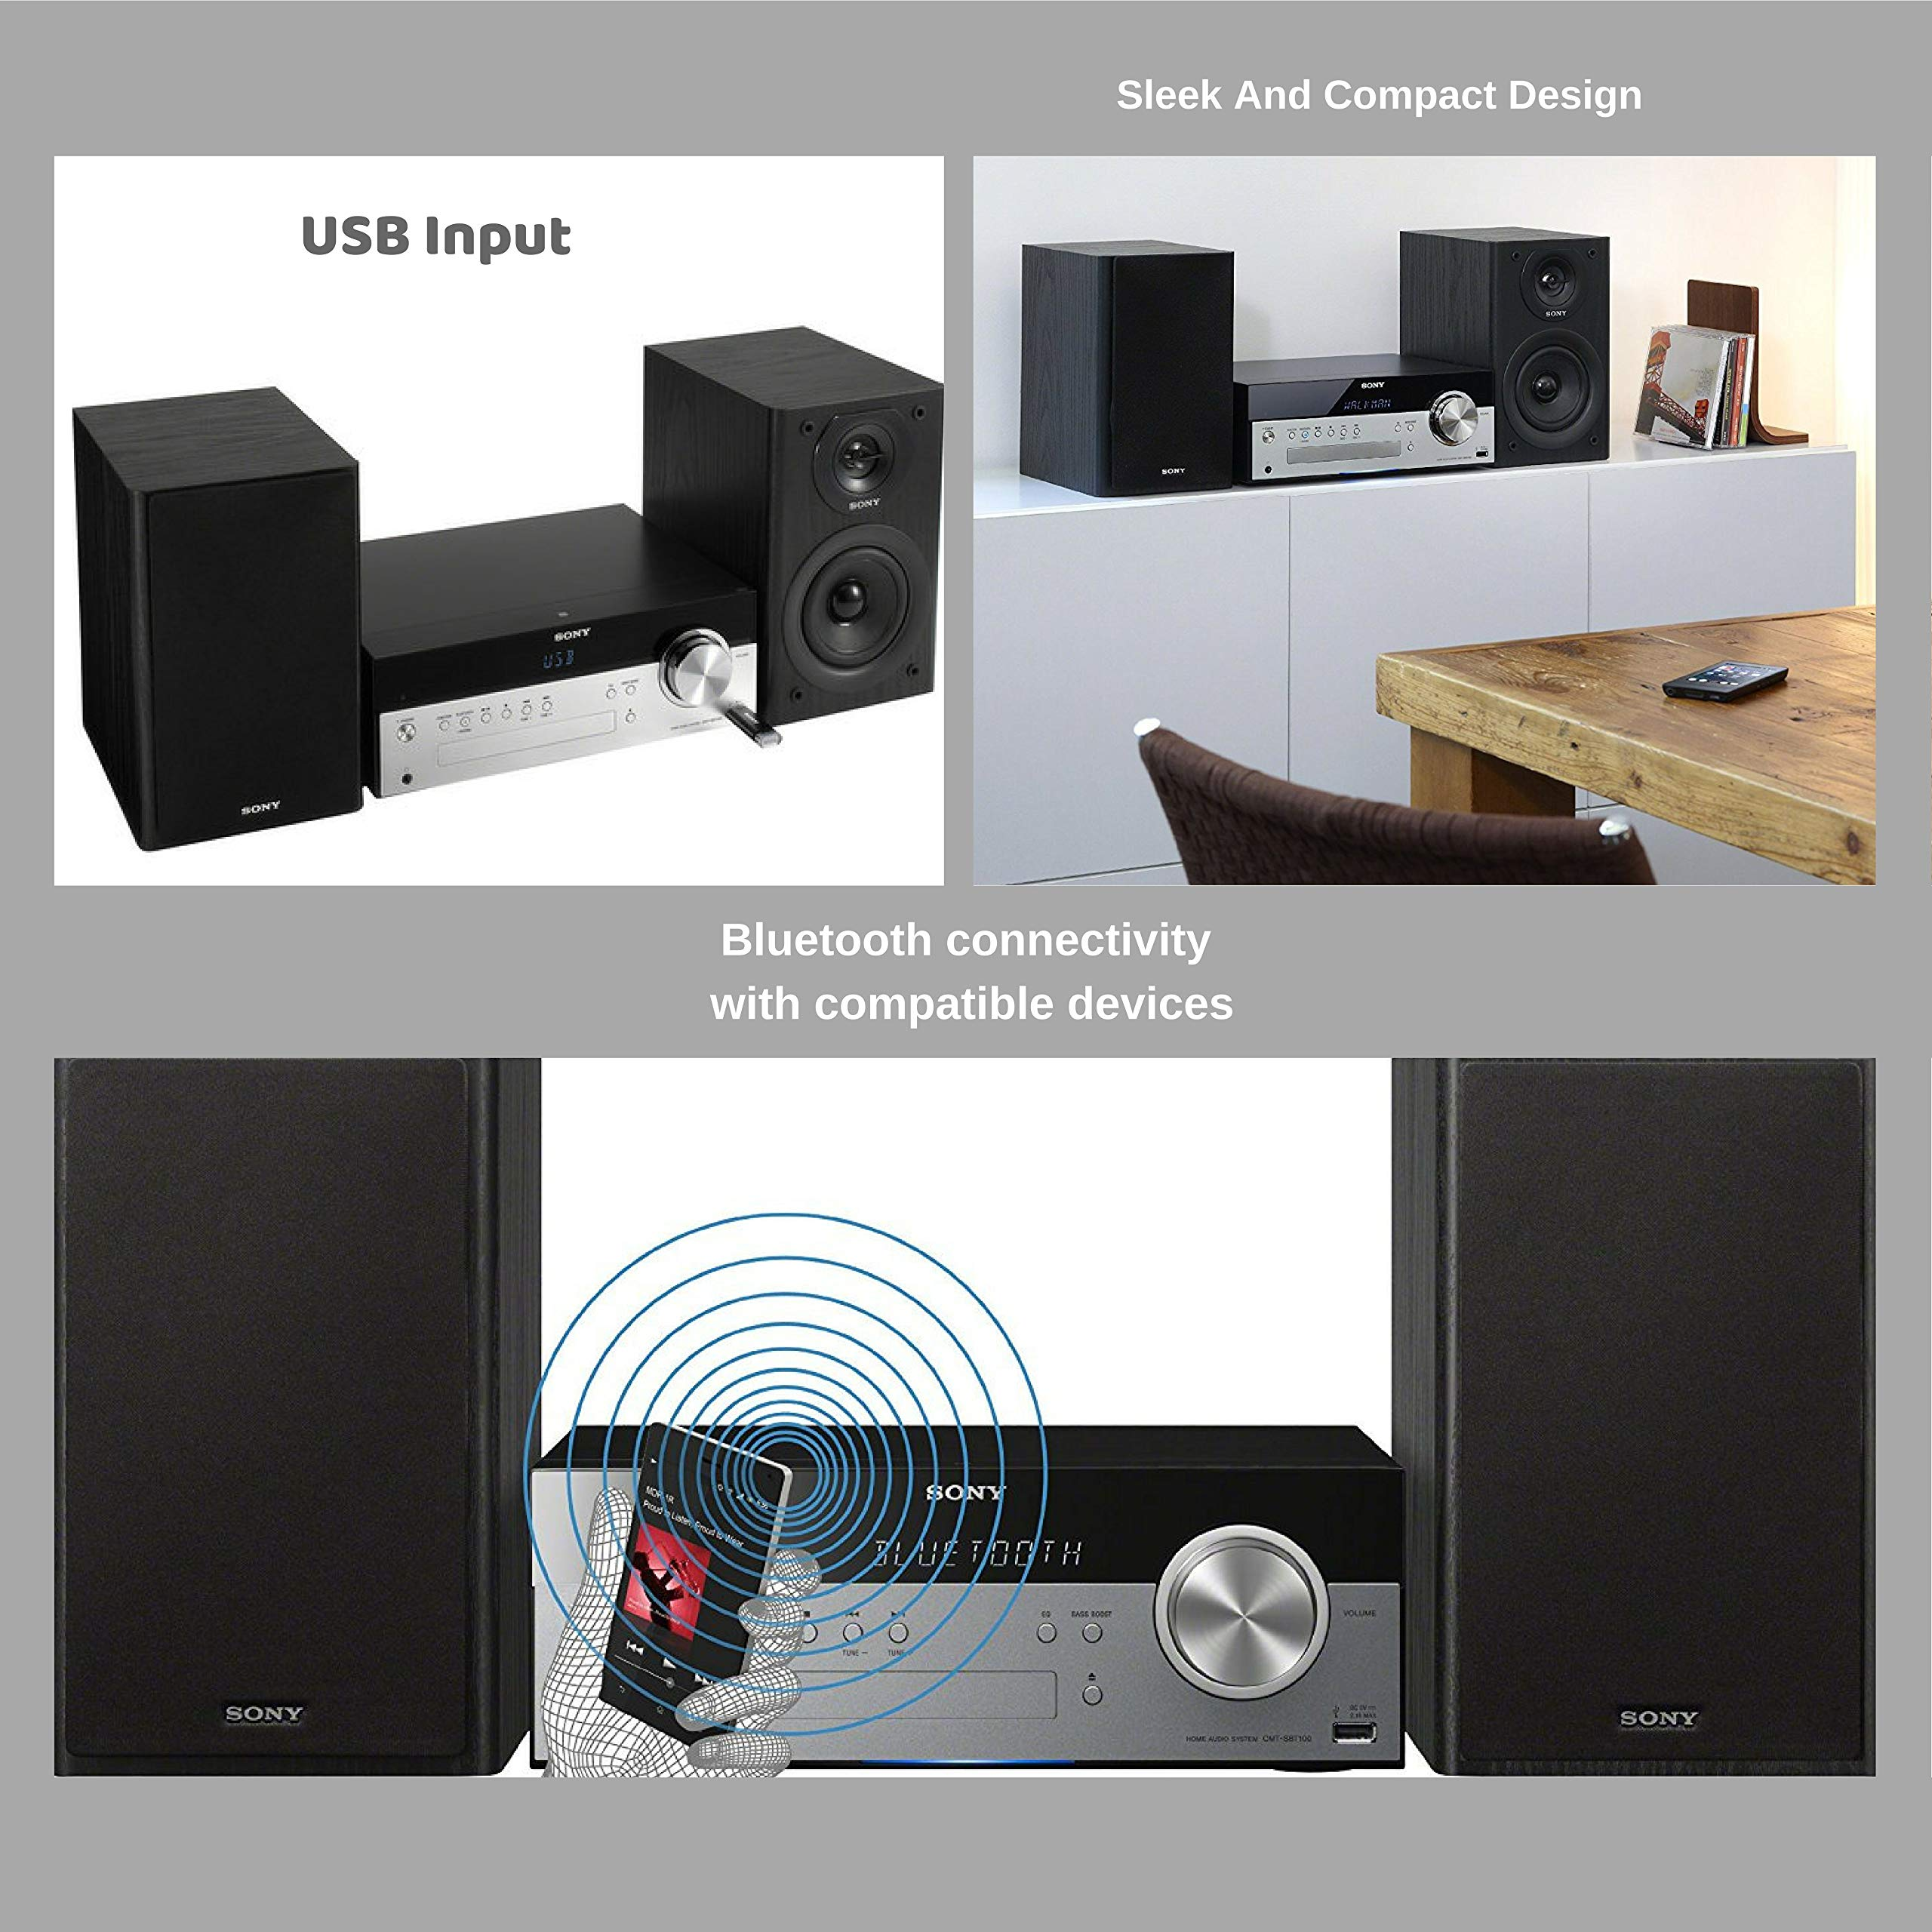 Sony Bluetooth Micro Music System Bundle – [2] Piece Set Includes Micro Hi-fi Shelf System with Single Disc Cd Player, Bluetooth, USB Input, 2-Way, Bass Reflex Speakers NeeGo Bluetooth Receiver; by NEEGO (Image #2)